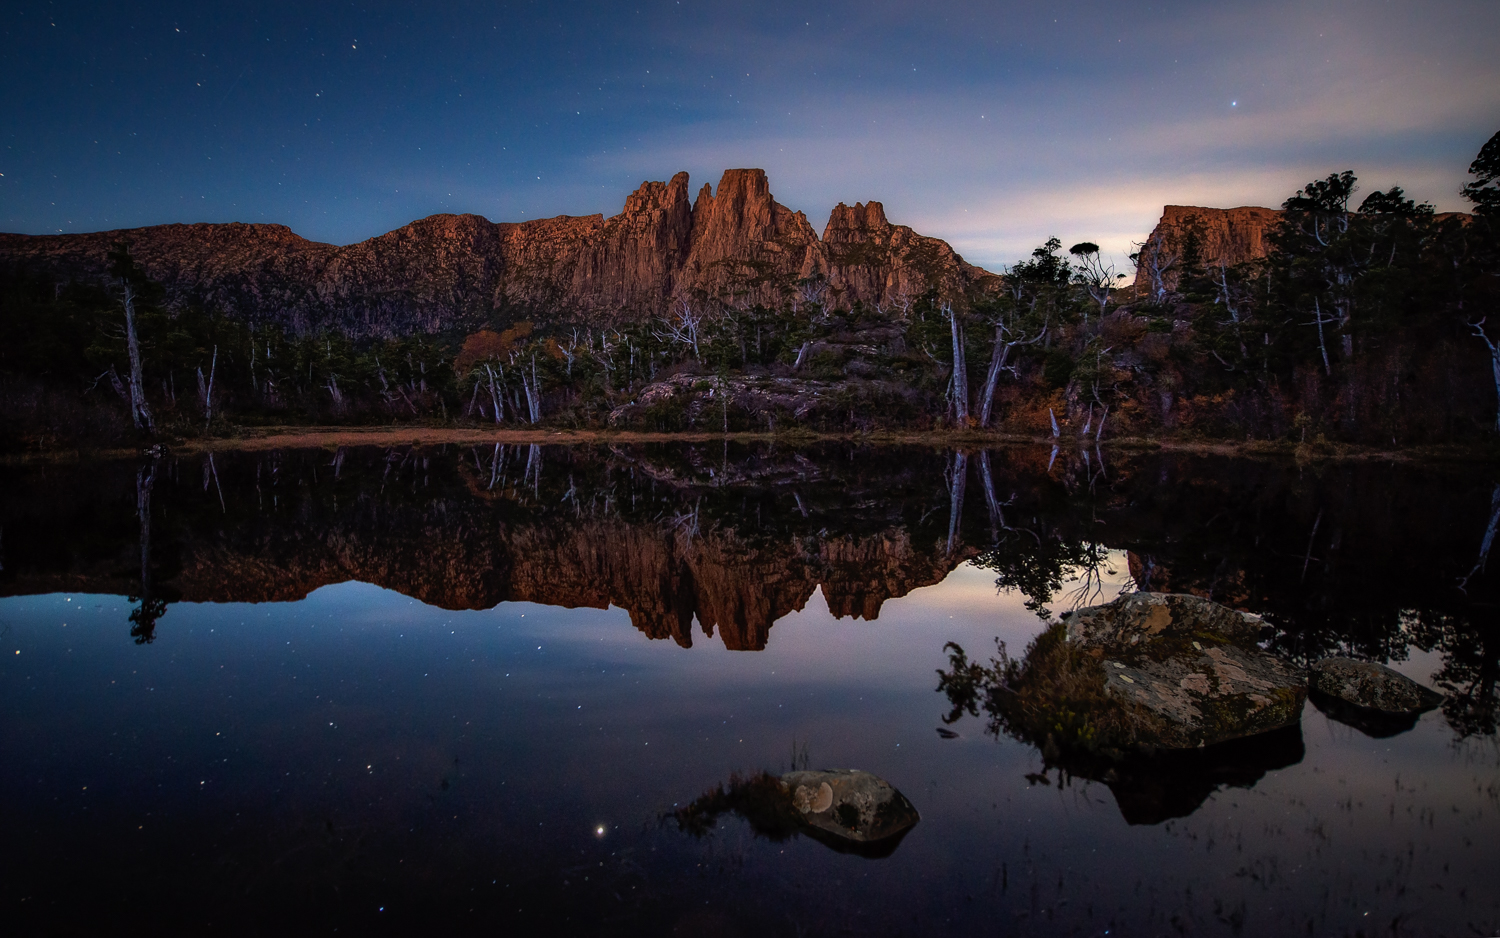 Tasmanian Photography - Reflecting On Memories Blue Hour - WILKOGRAPHY.jpg